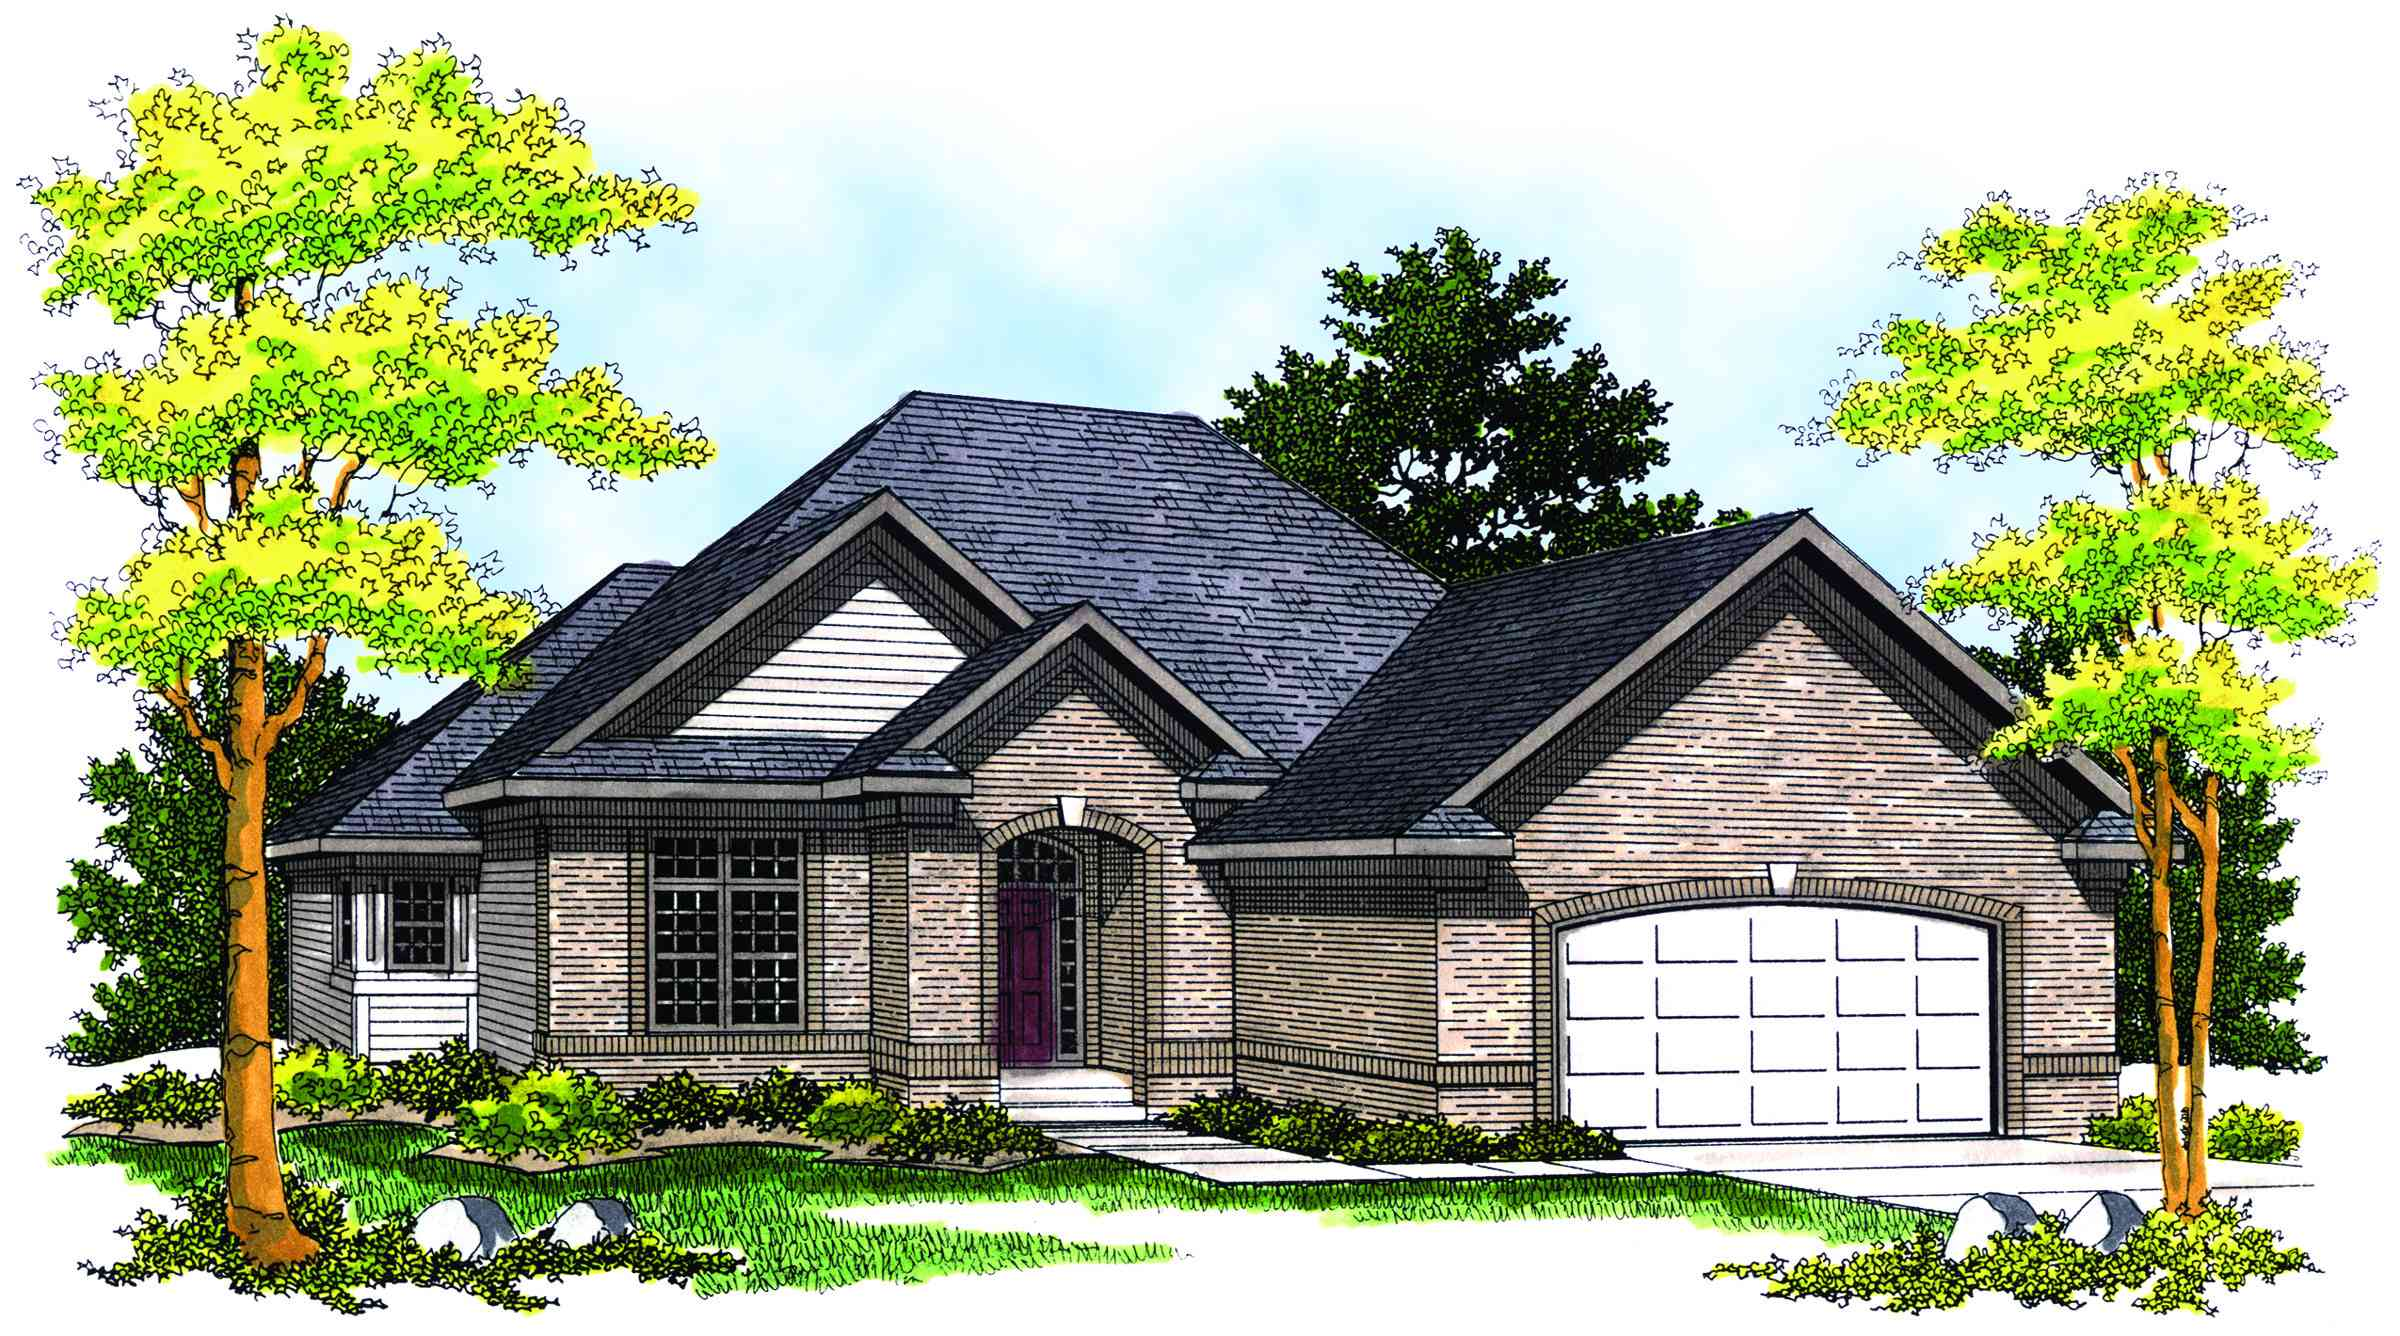 Charming Ranch Style Home Plan 89120ah 1st Floor